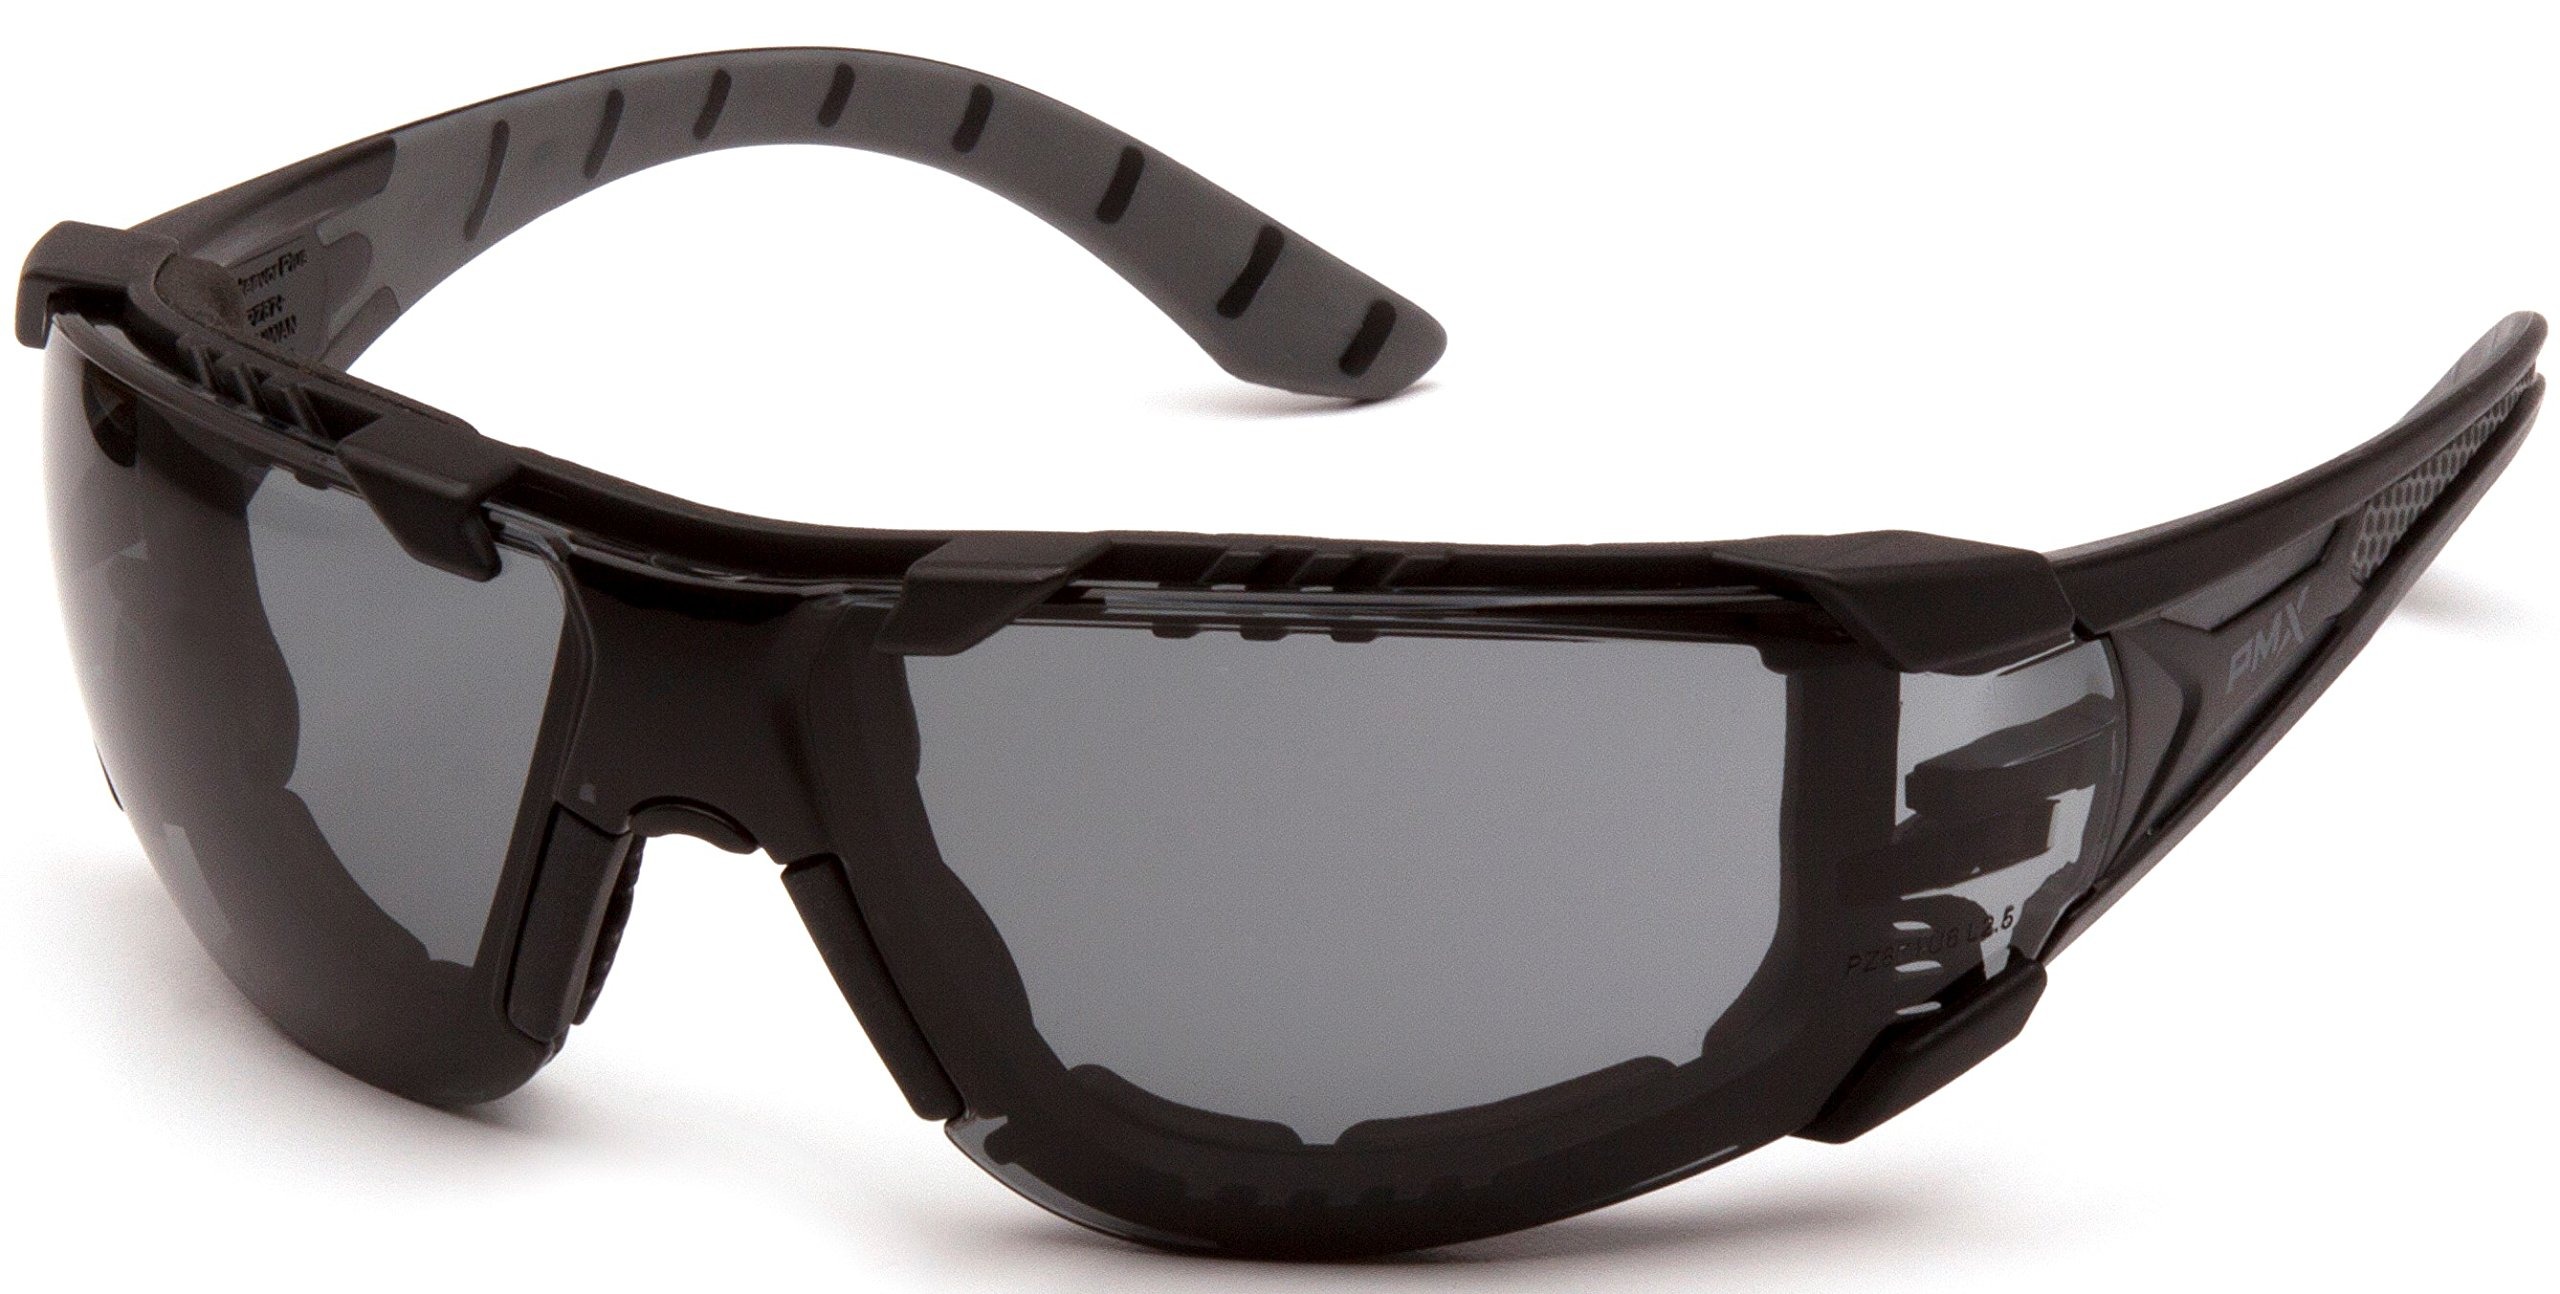 Pyramex Endeavor Plus Durable Safety Glasses, Black/Gray Foam Frame, Gray Anti-Fog Lens